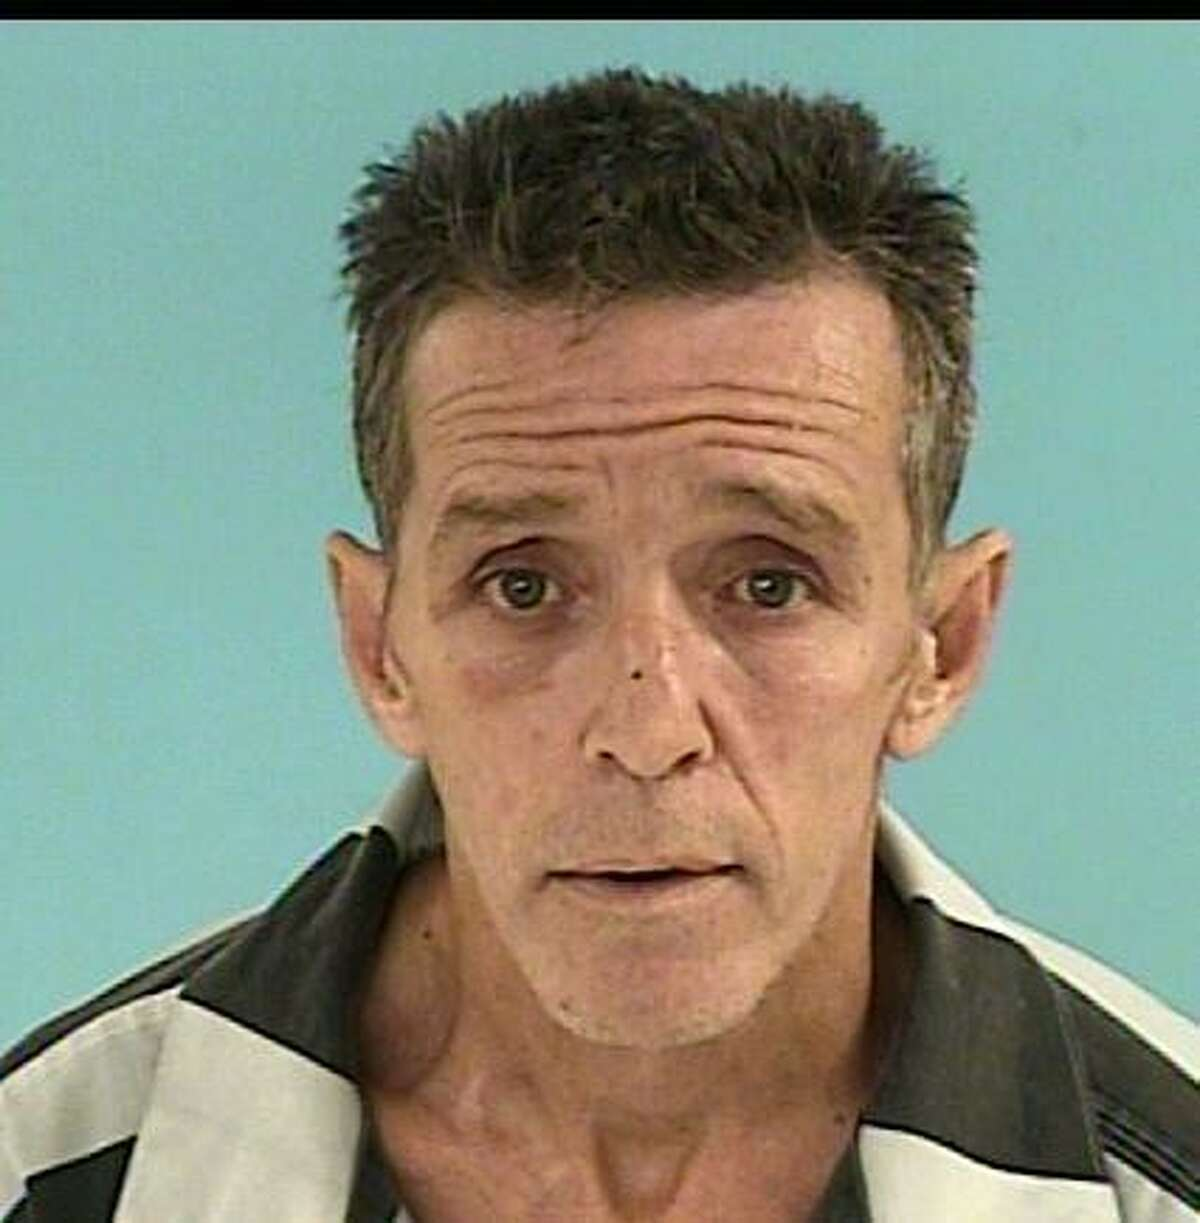 CHAVERS, Kennith RayWhite/Male DOB: 11/20/1964Height: 5'06'' Weight: 120 lbs.Hair: Brown Eyes: HazelWarrant: # 111213036 Order of ArrestDWI 3rd or moreLKA: Ave E., Conroe.